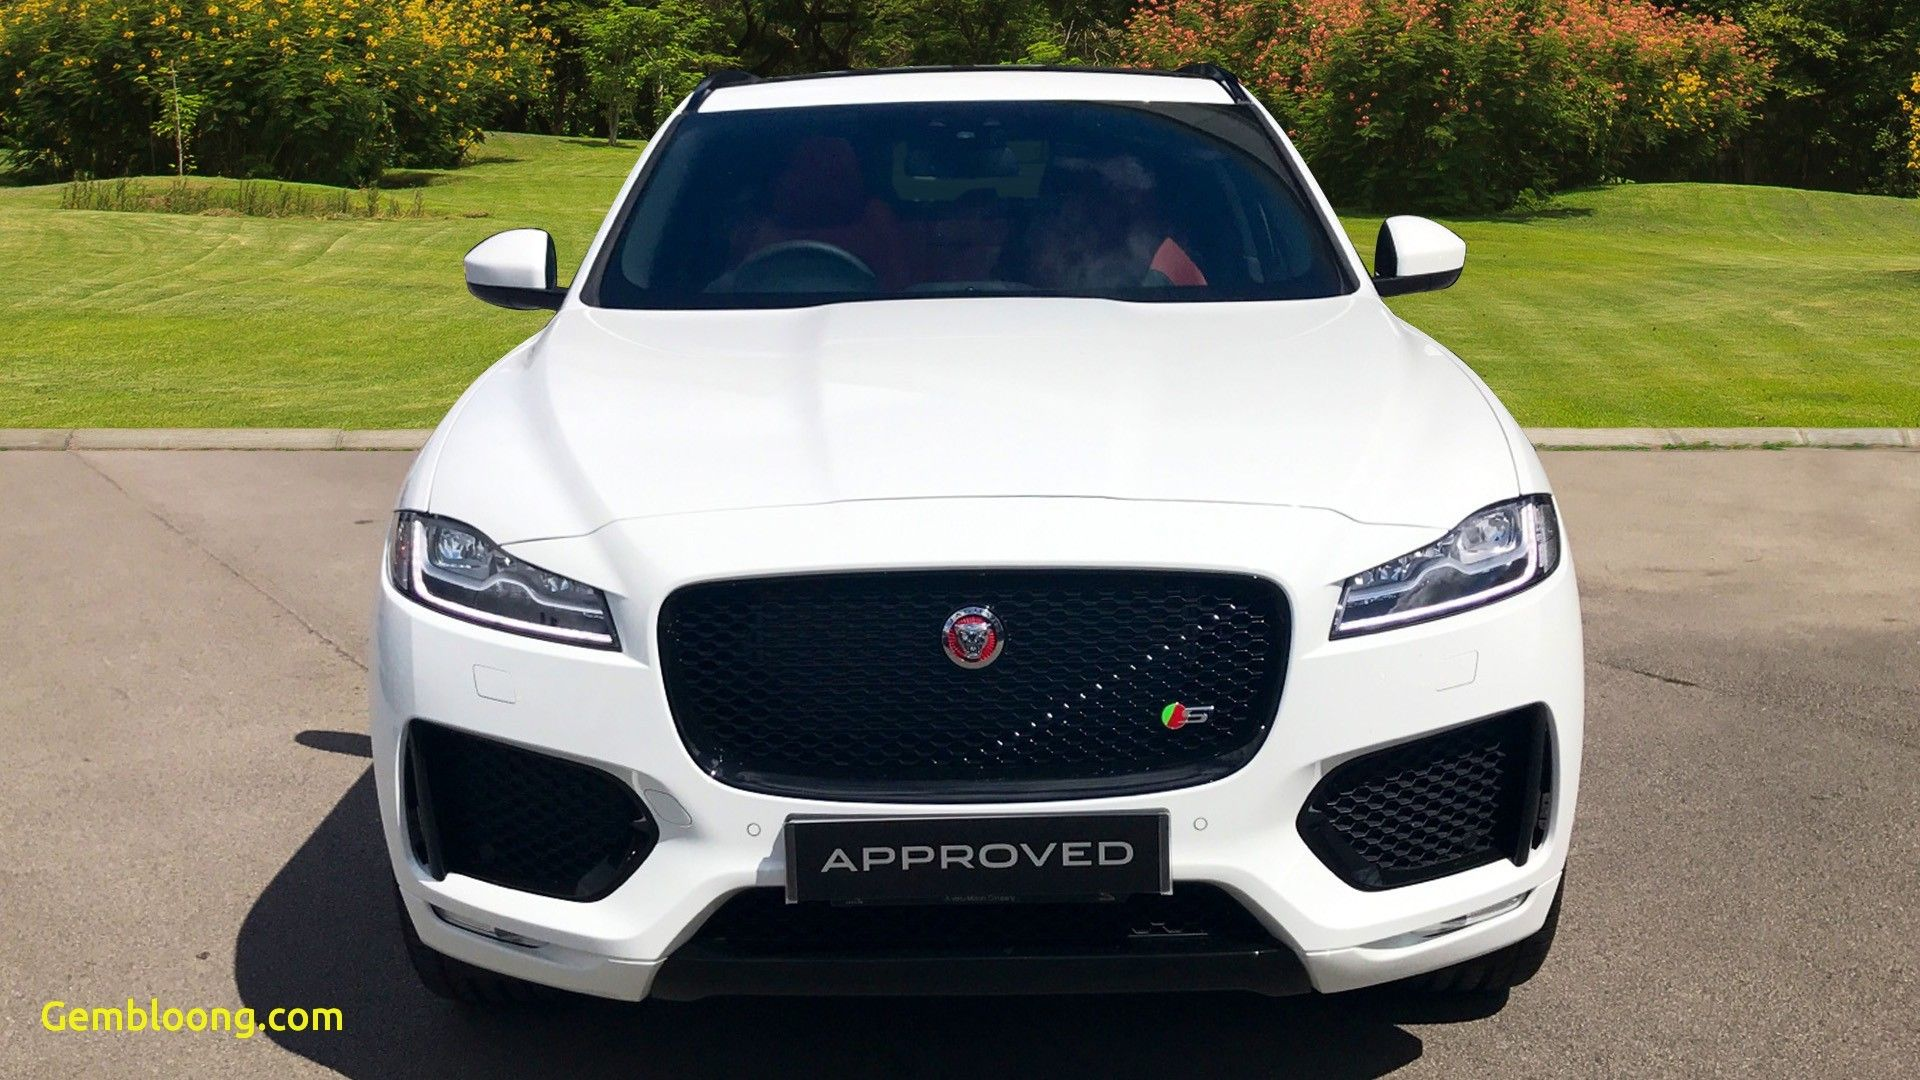 Cars Sales Luxury Car Used Cars For Sale New Cars Near Me Used Cars Near Me Cars Near Me Cars For Sale